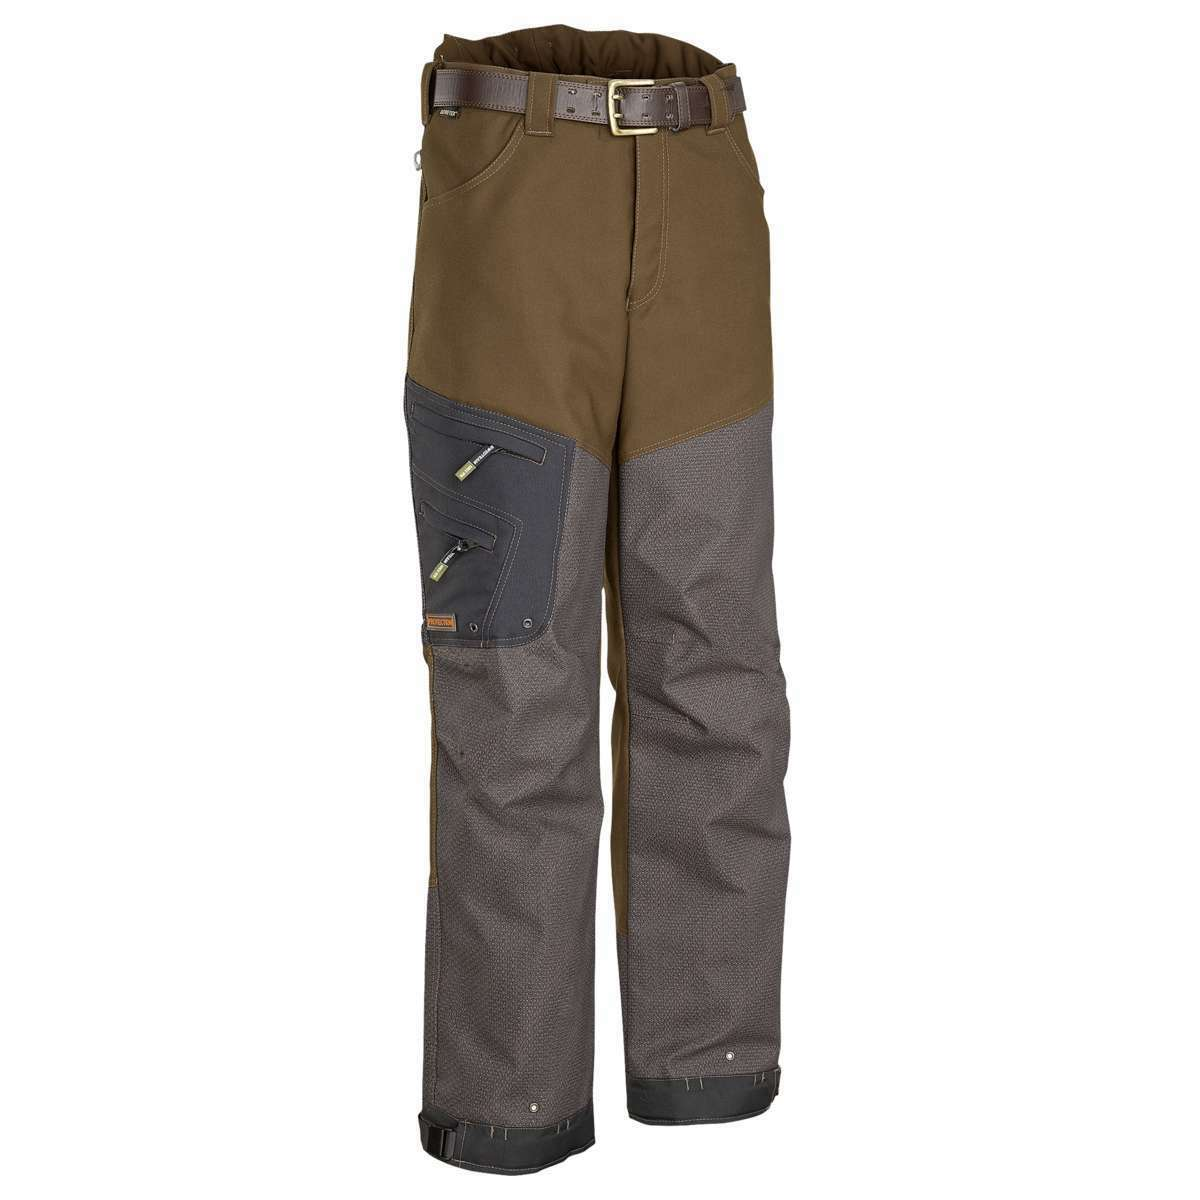 Swedteam Titan Pro Predection Trousers